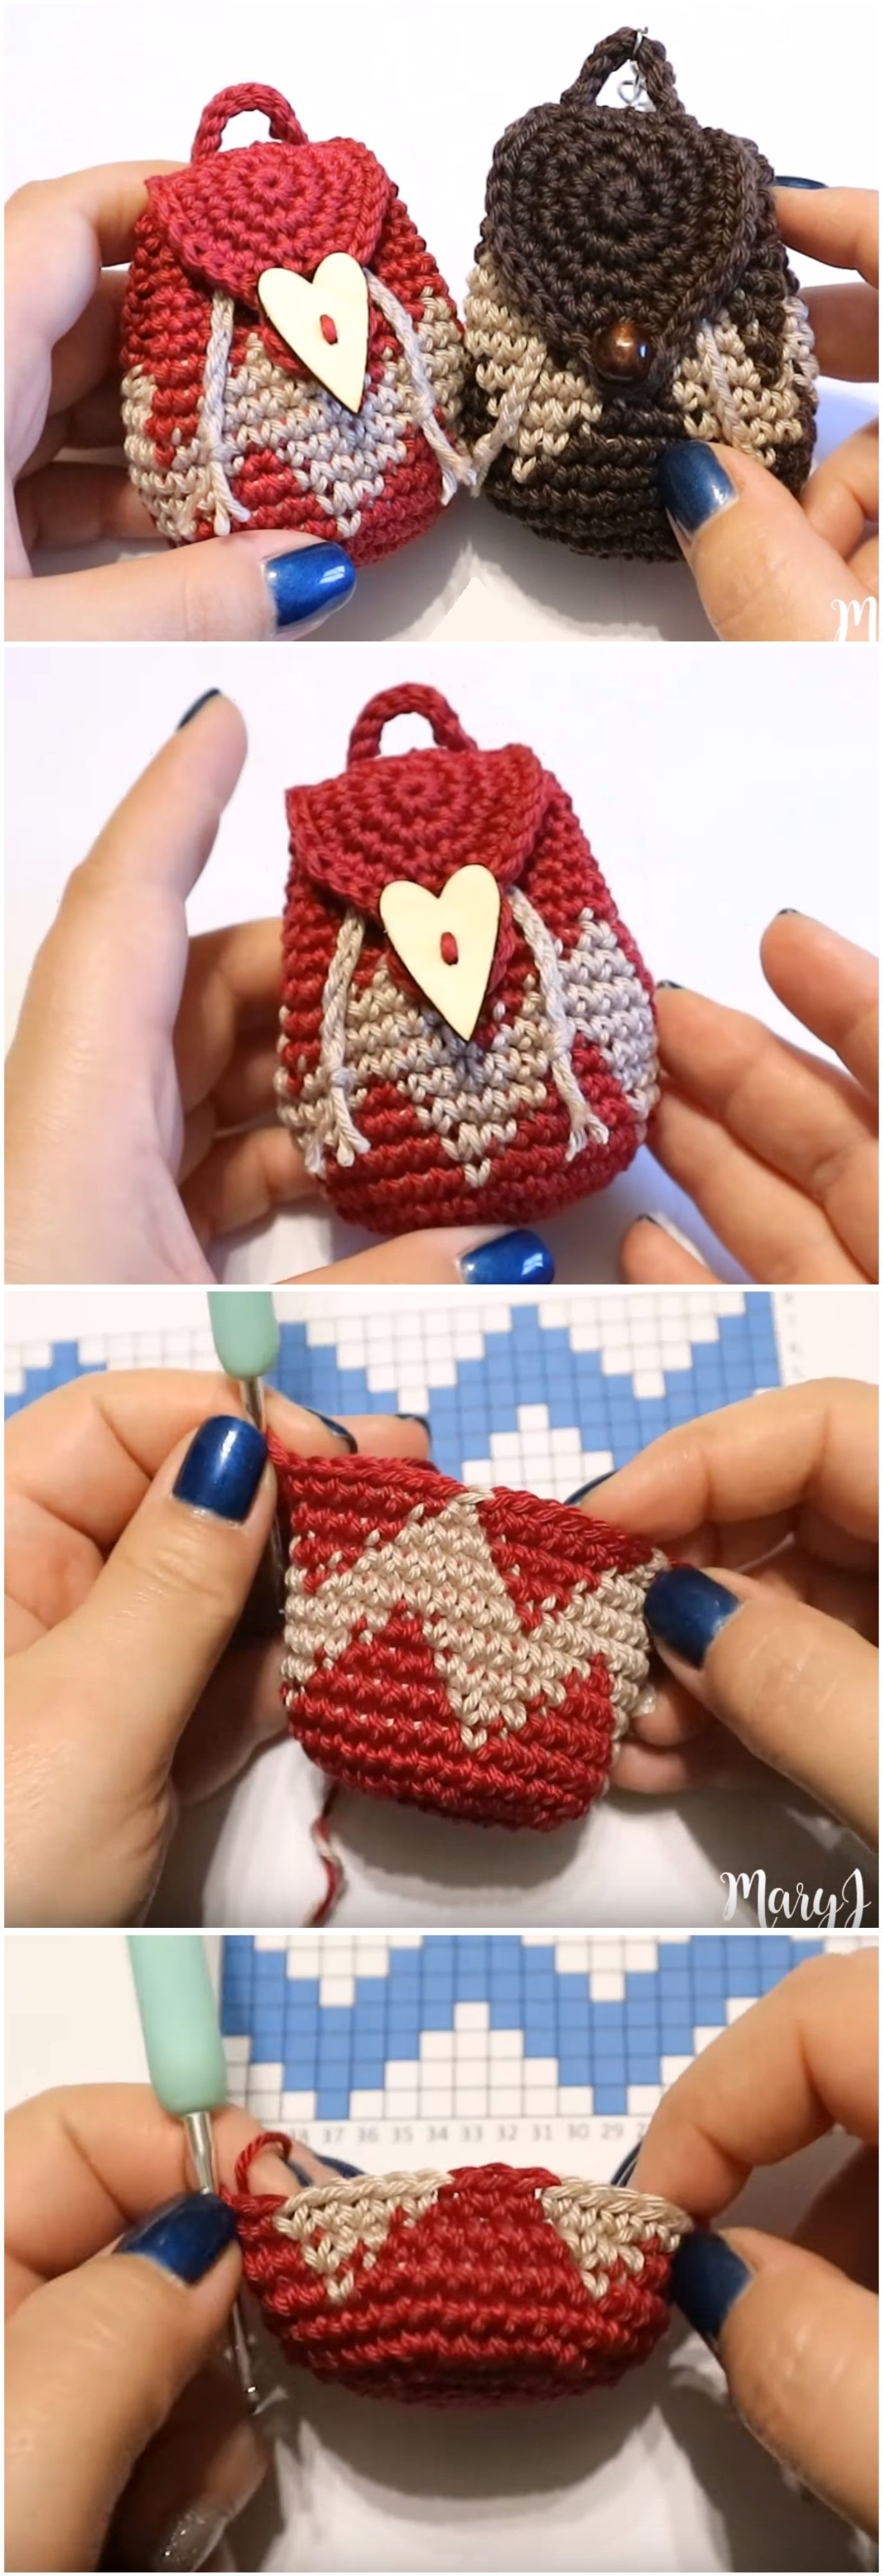 Crochet Tapestry Mini Backpack Purse Häkeln Pinterest